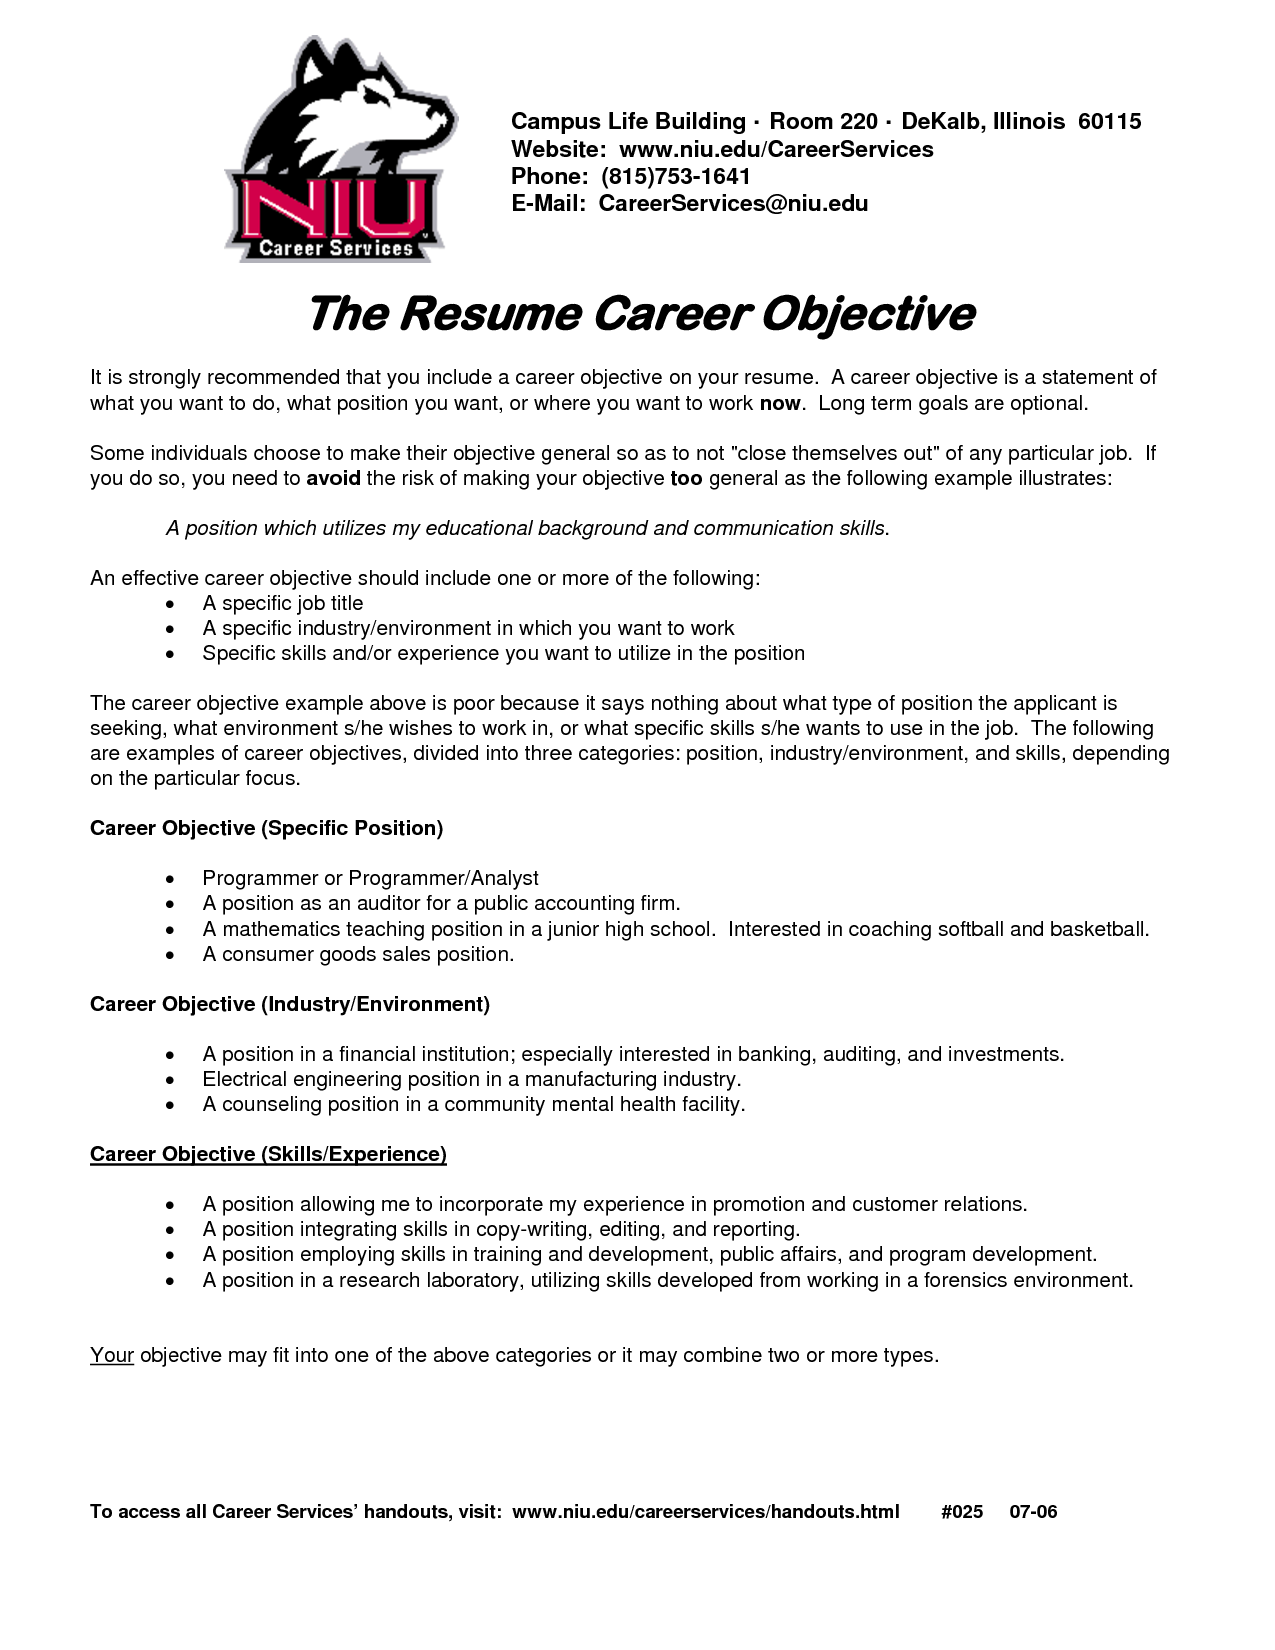 A Good Objective For A Resume Httpswwwgooglesearchqobjective Resume  Resume